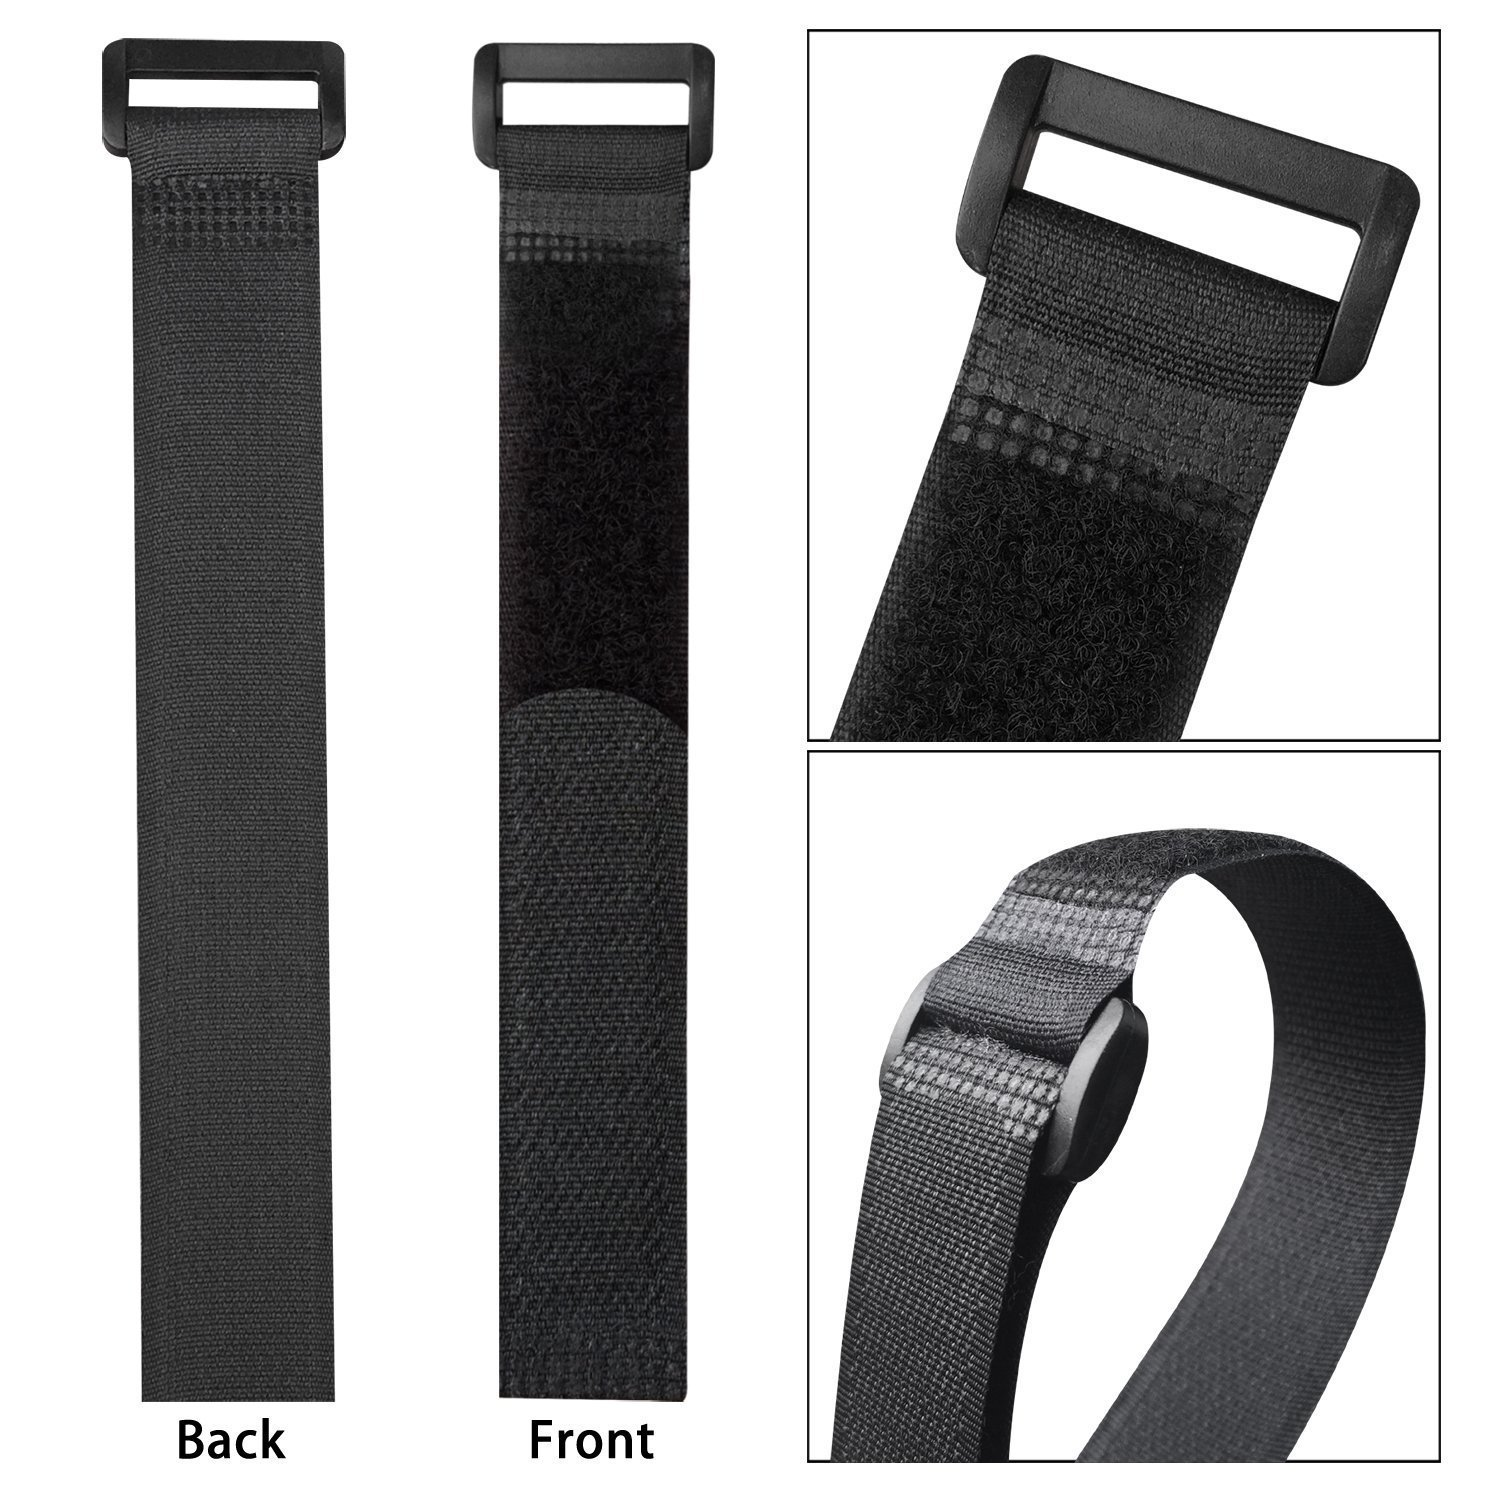 10pcs 8inch Self Adhesive Reusable Cable Tie Nylon Fastener Hook and Loop Strap Cord Ties PC TV Organizer 20cm Length 2cm Width